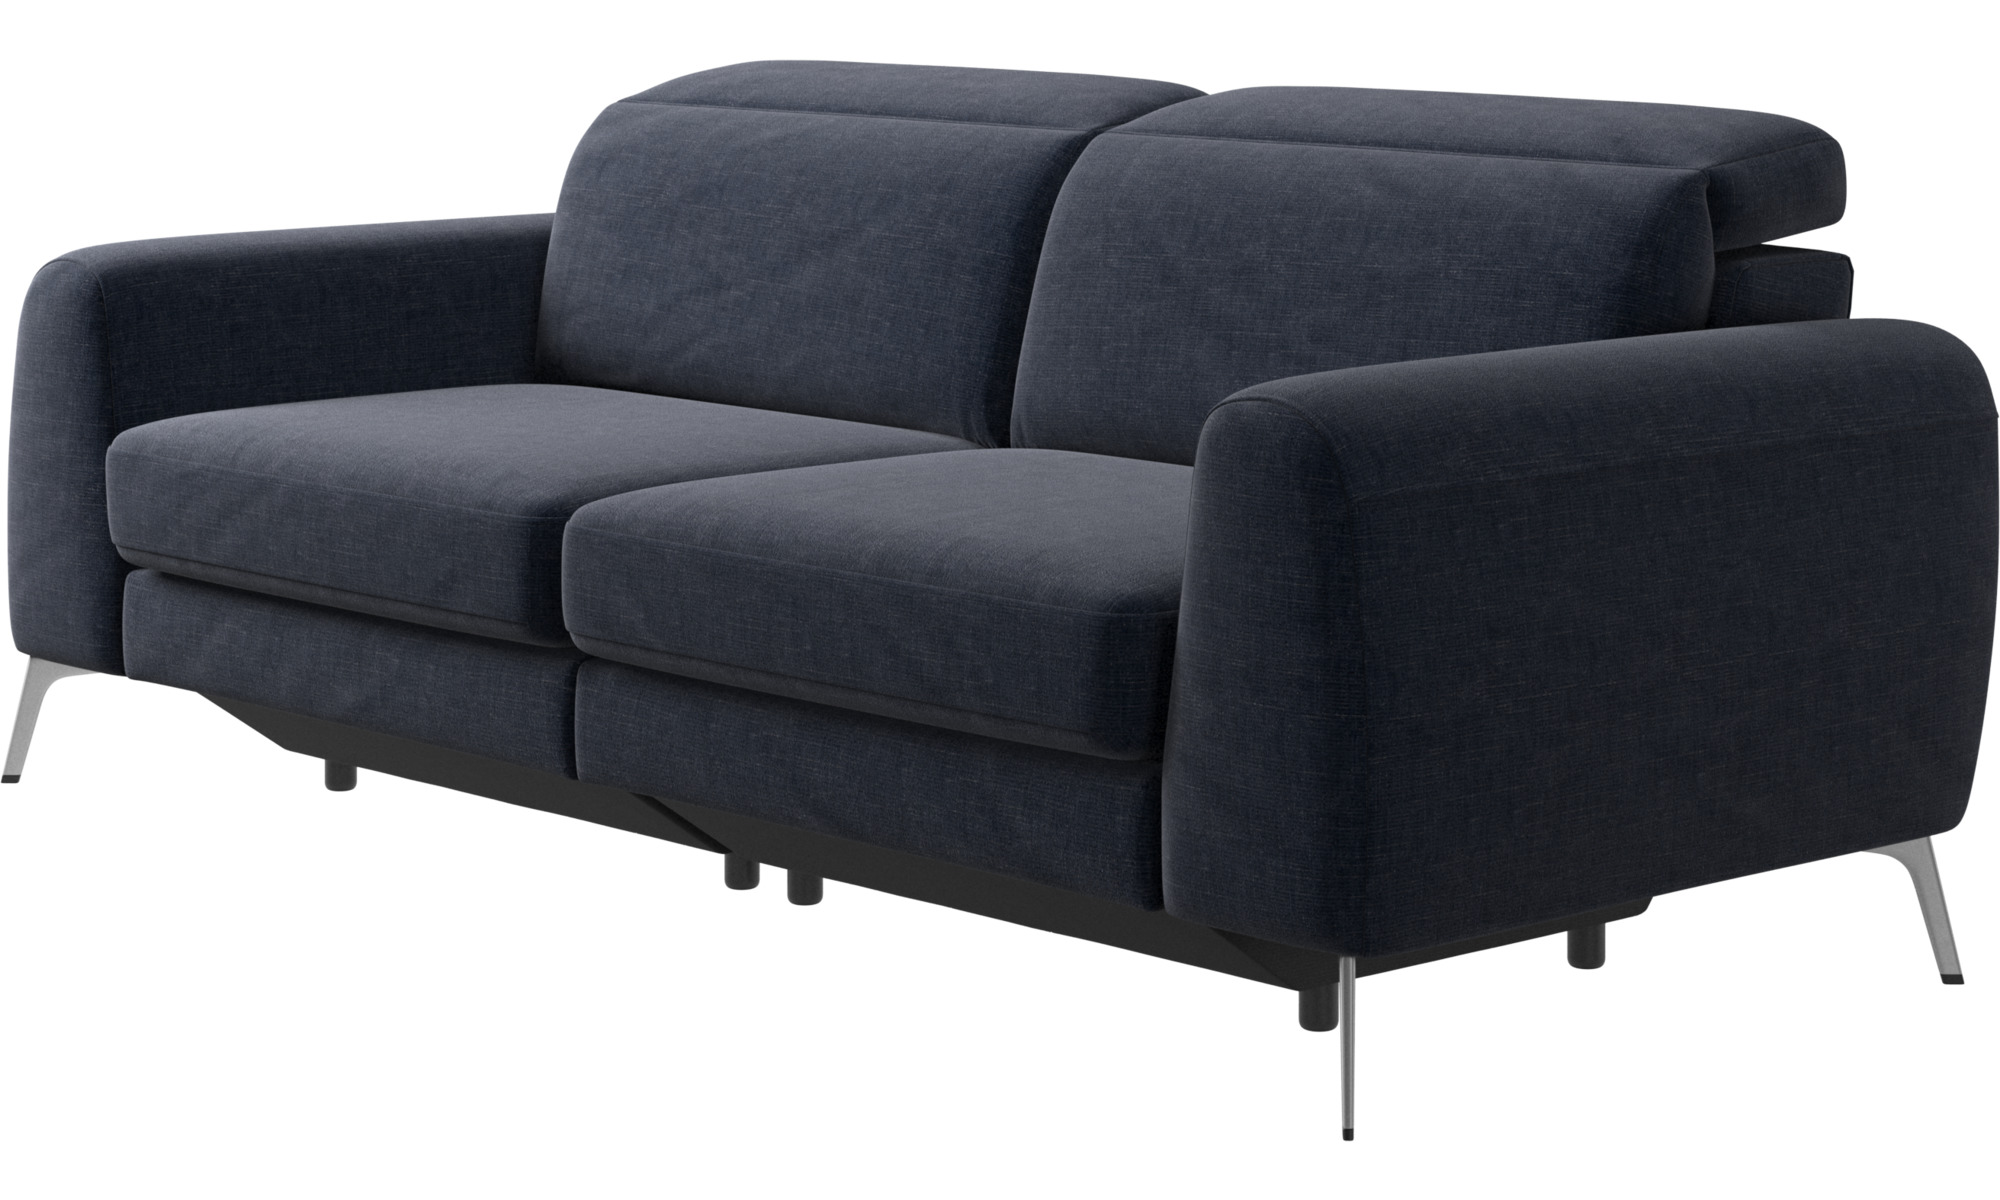 dunkelblauer napoli stoff madison sofa mit verstellbarer kopfst tze boconcept. Black Bedroom Furniture Sets. Home Design Ideas